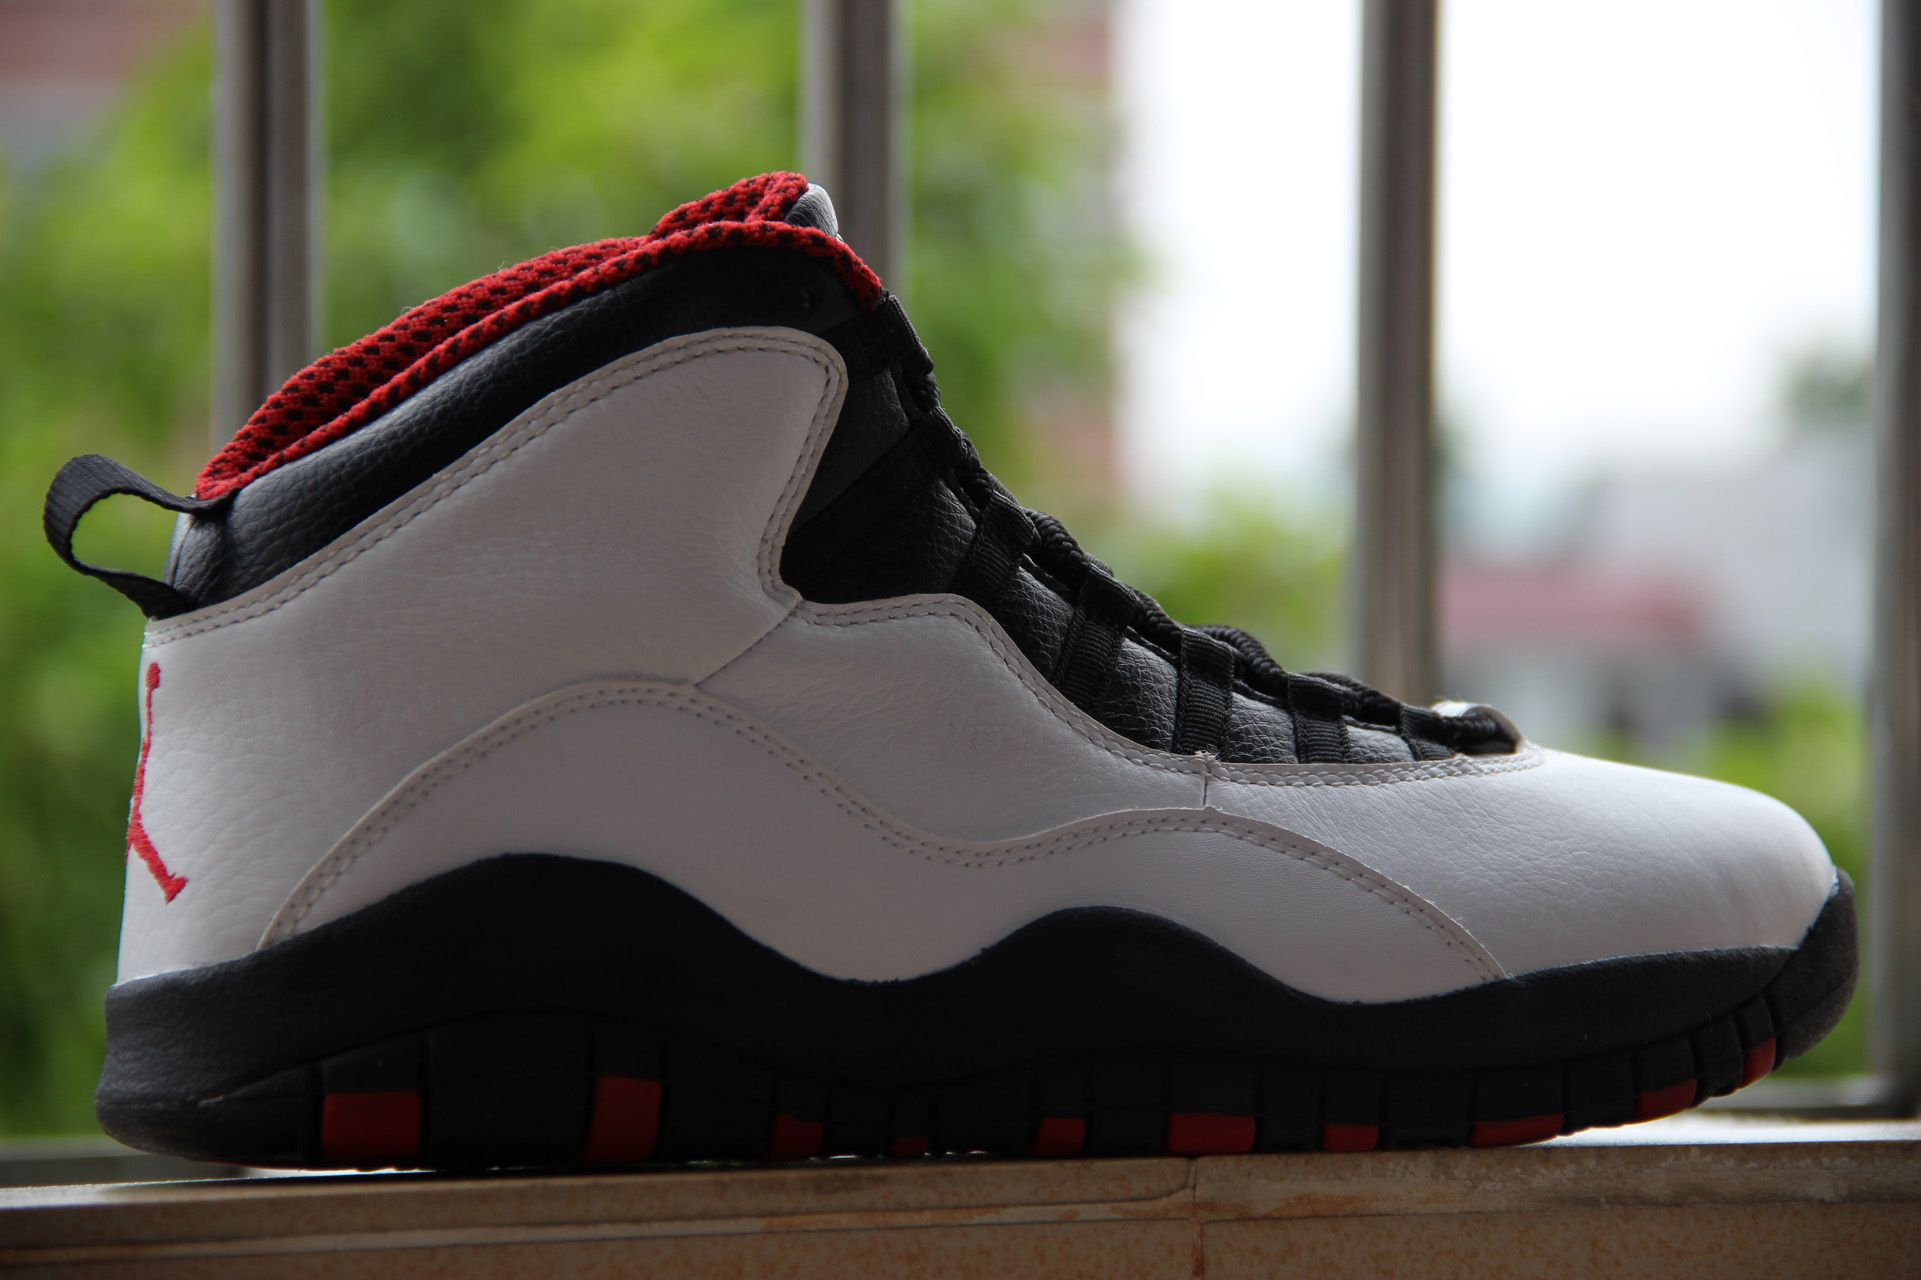 size 40 58c99 8166e Air Jordan 10 Retro Chicago Bulls, 310805-100